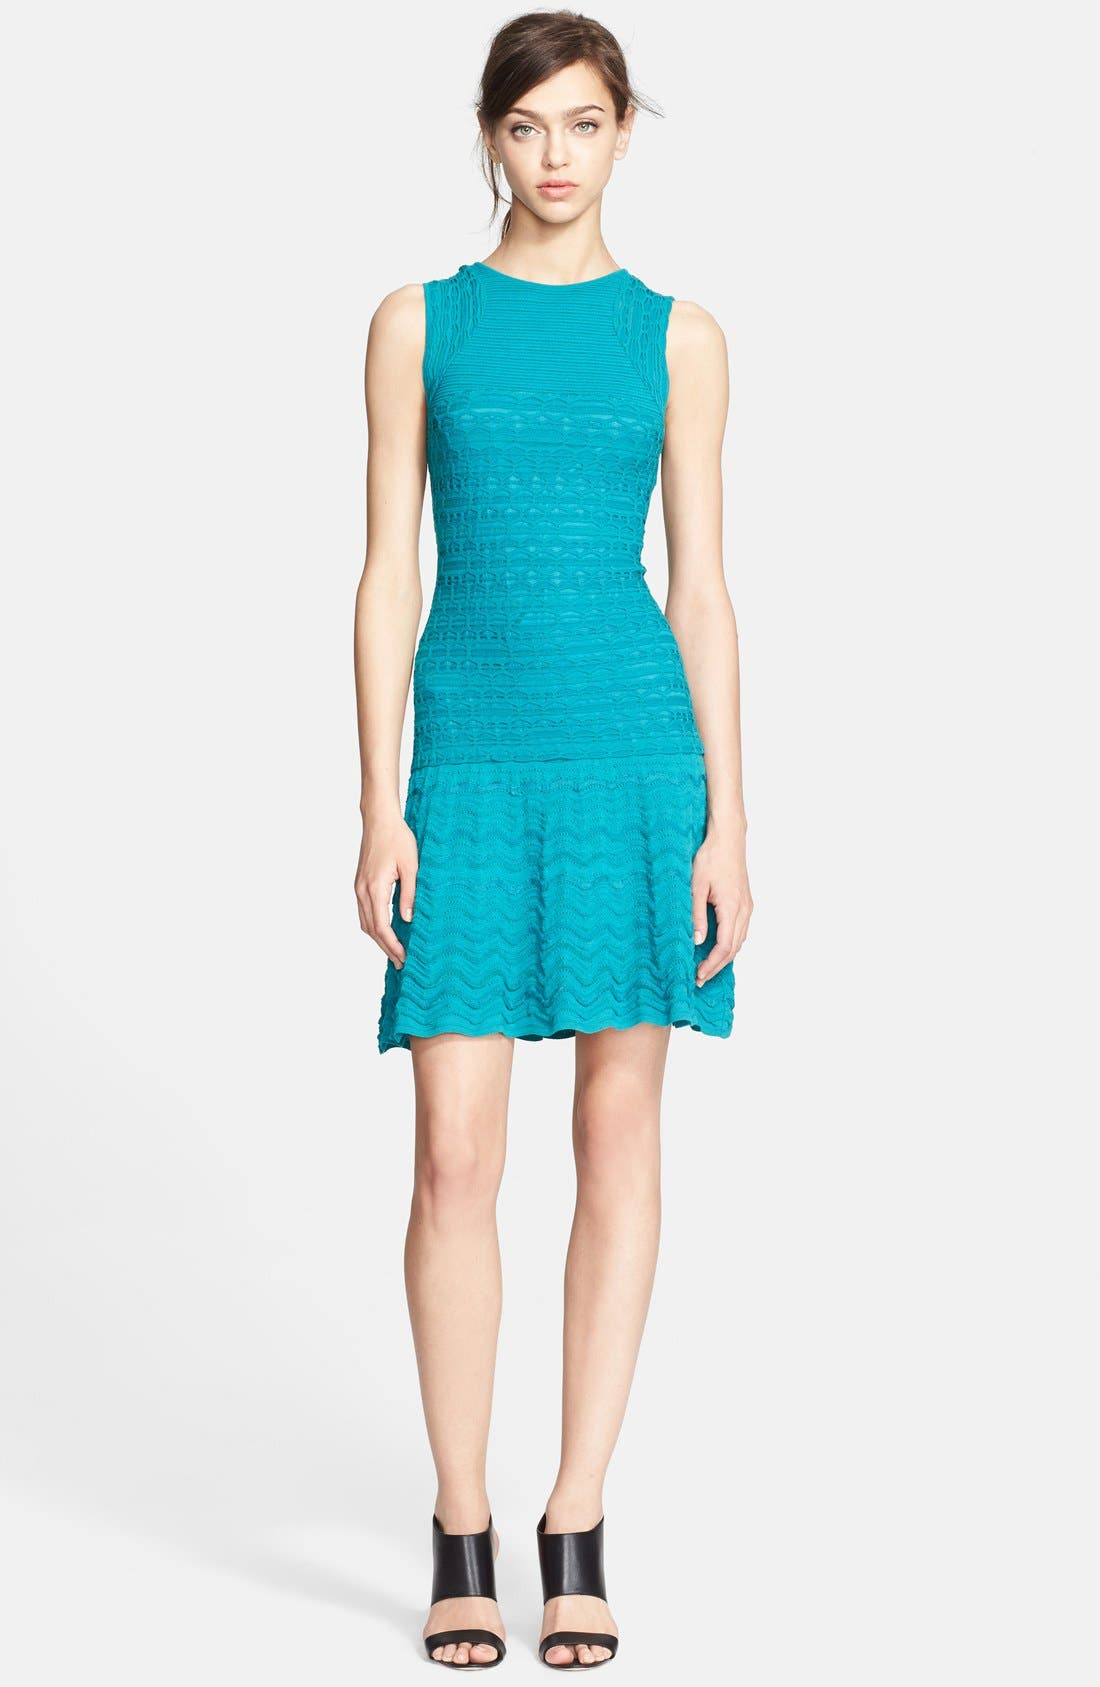 Main Image - M Missoni Sleeveless Crochet Knit Dress